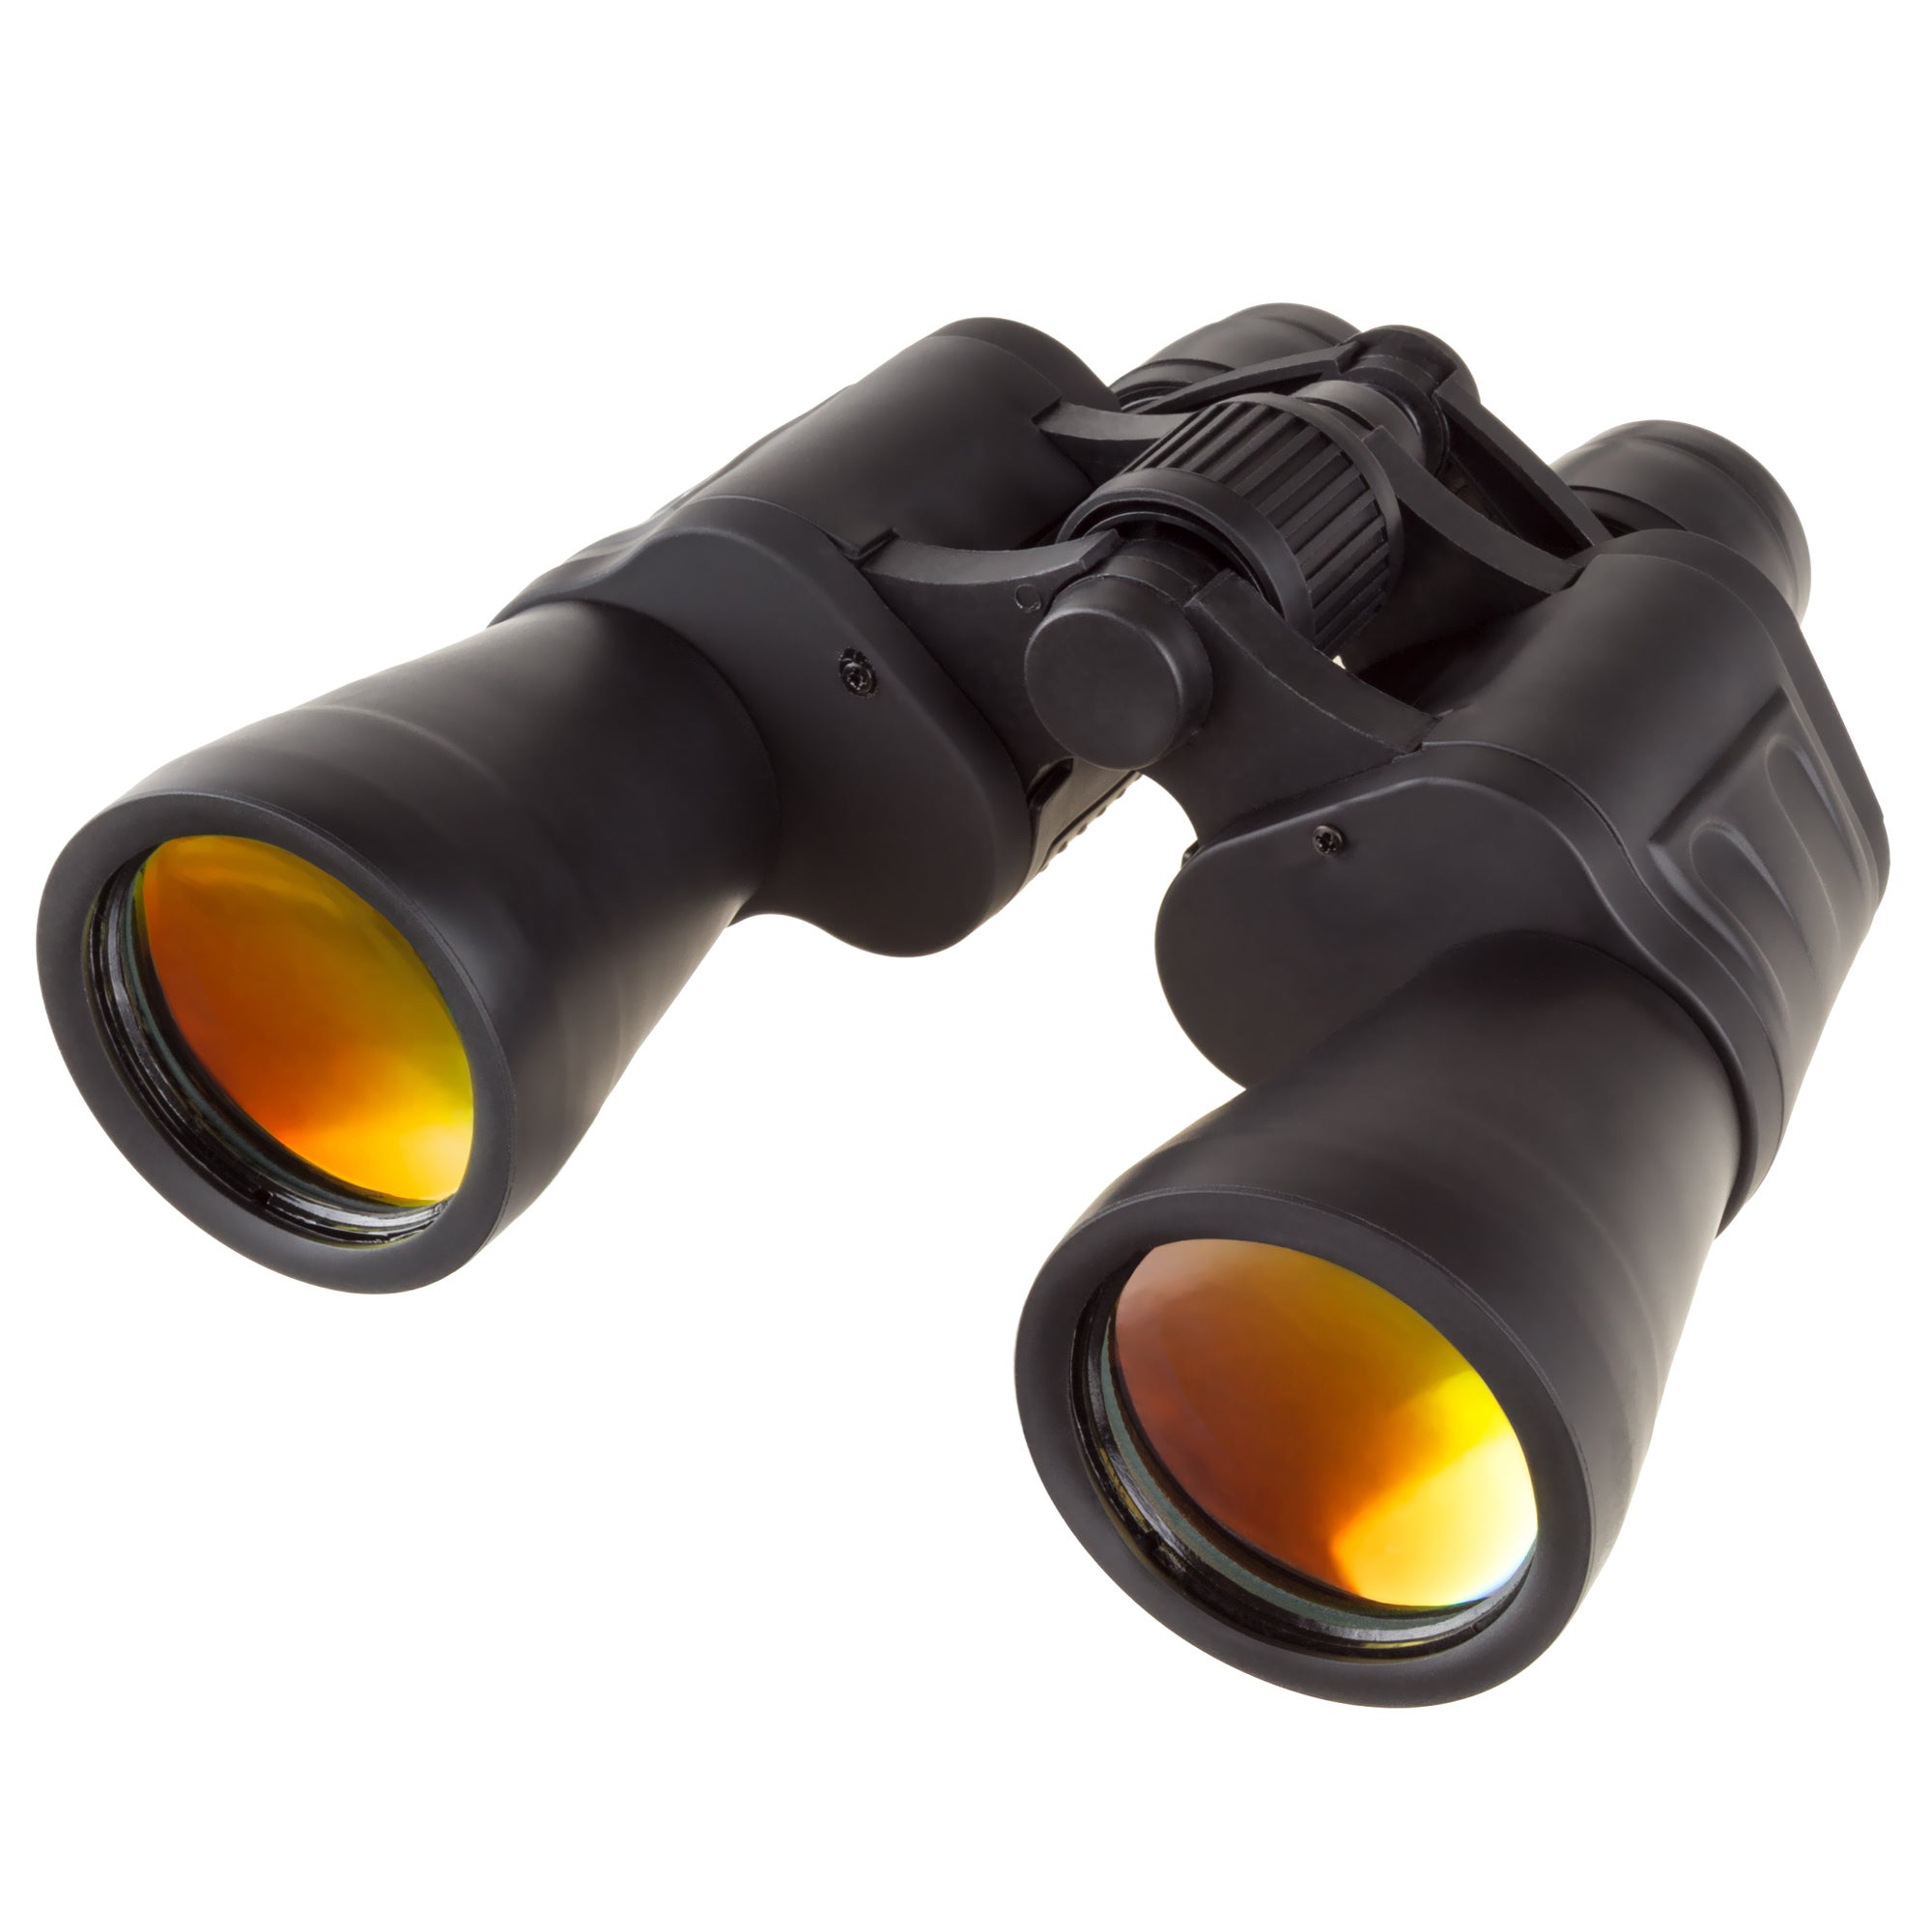 Wide View Binoculars – Low Light Field Glasses with 7x Magnification 1000 Range by Wakeman Outdoors (7×50 Binoculars Wide View for Sport and Field)